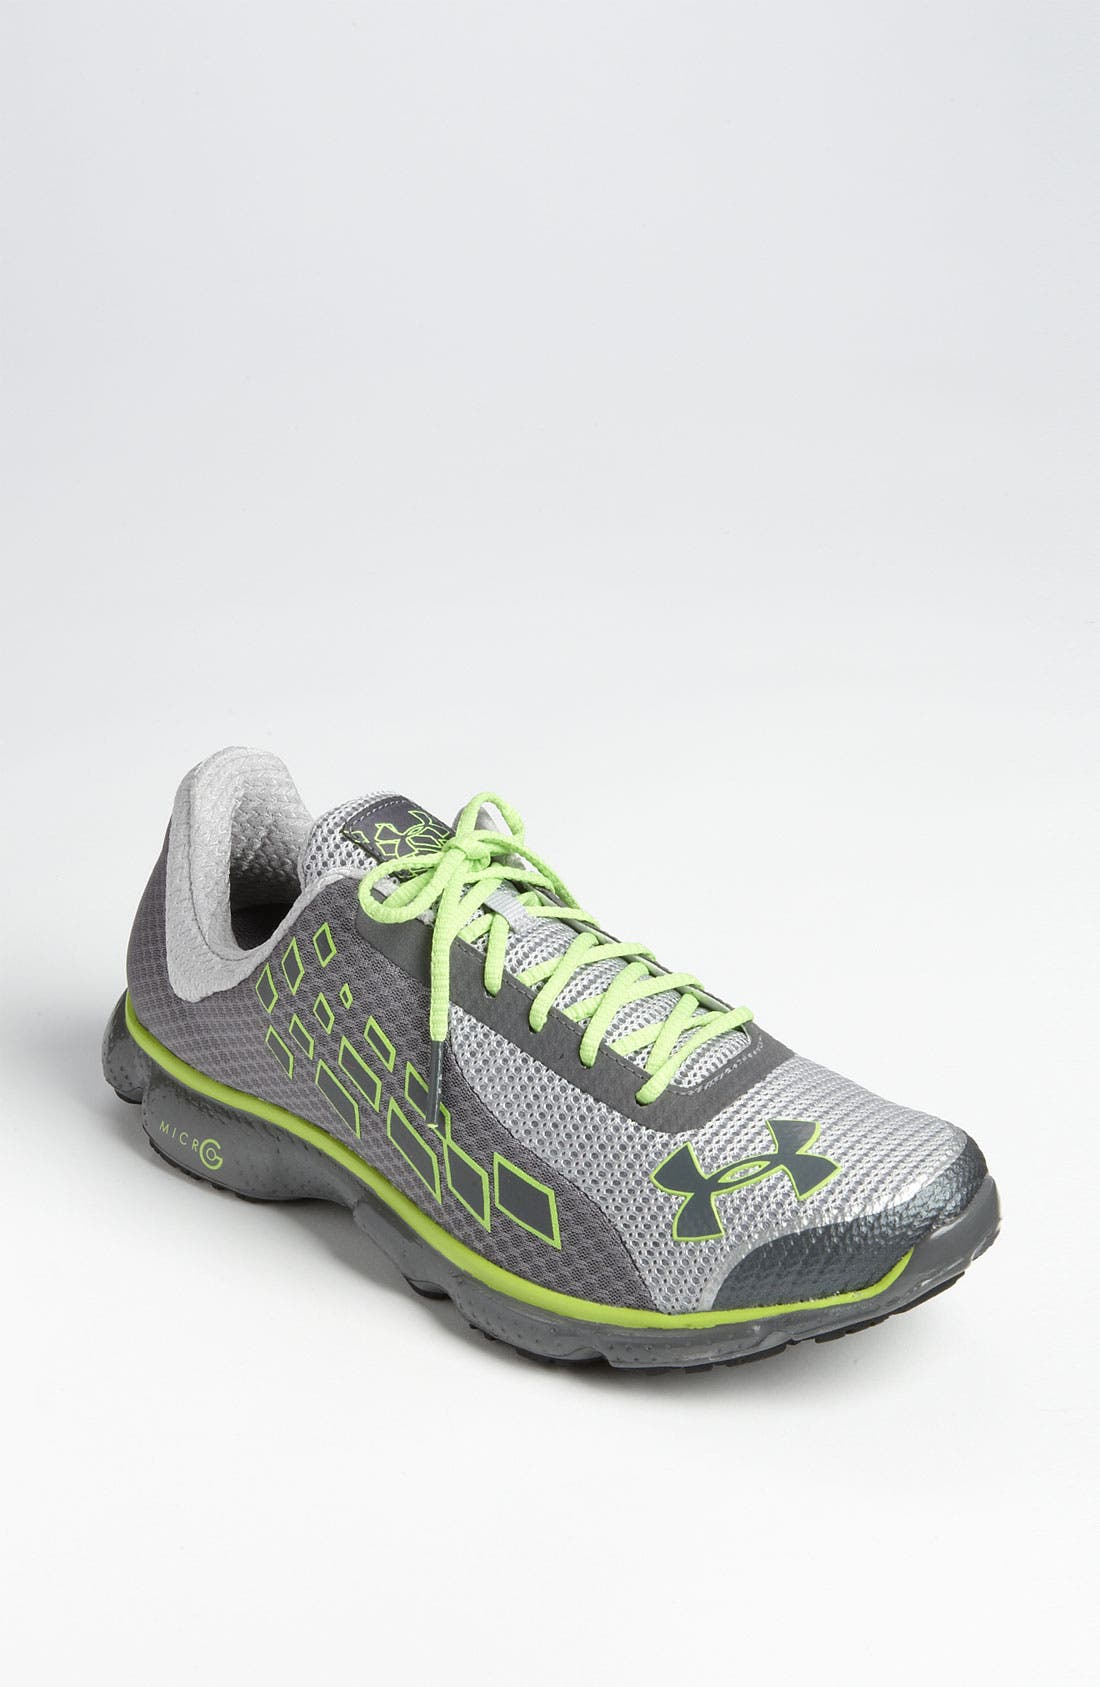 Main Image - Under Armour 'Stealth' Training Shoe (Women)